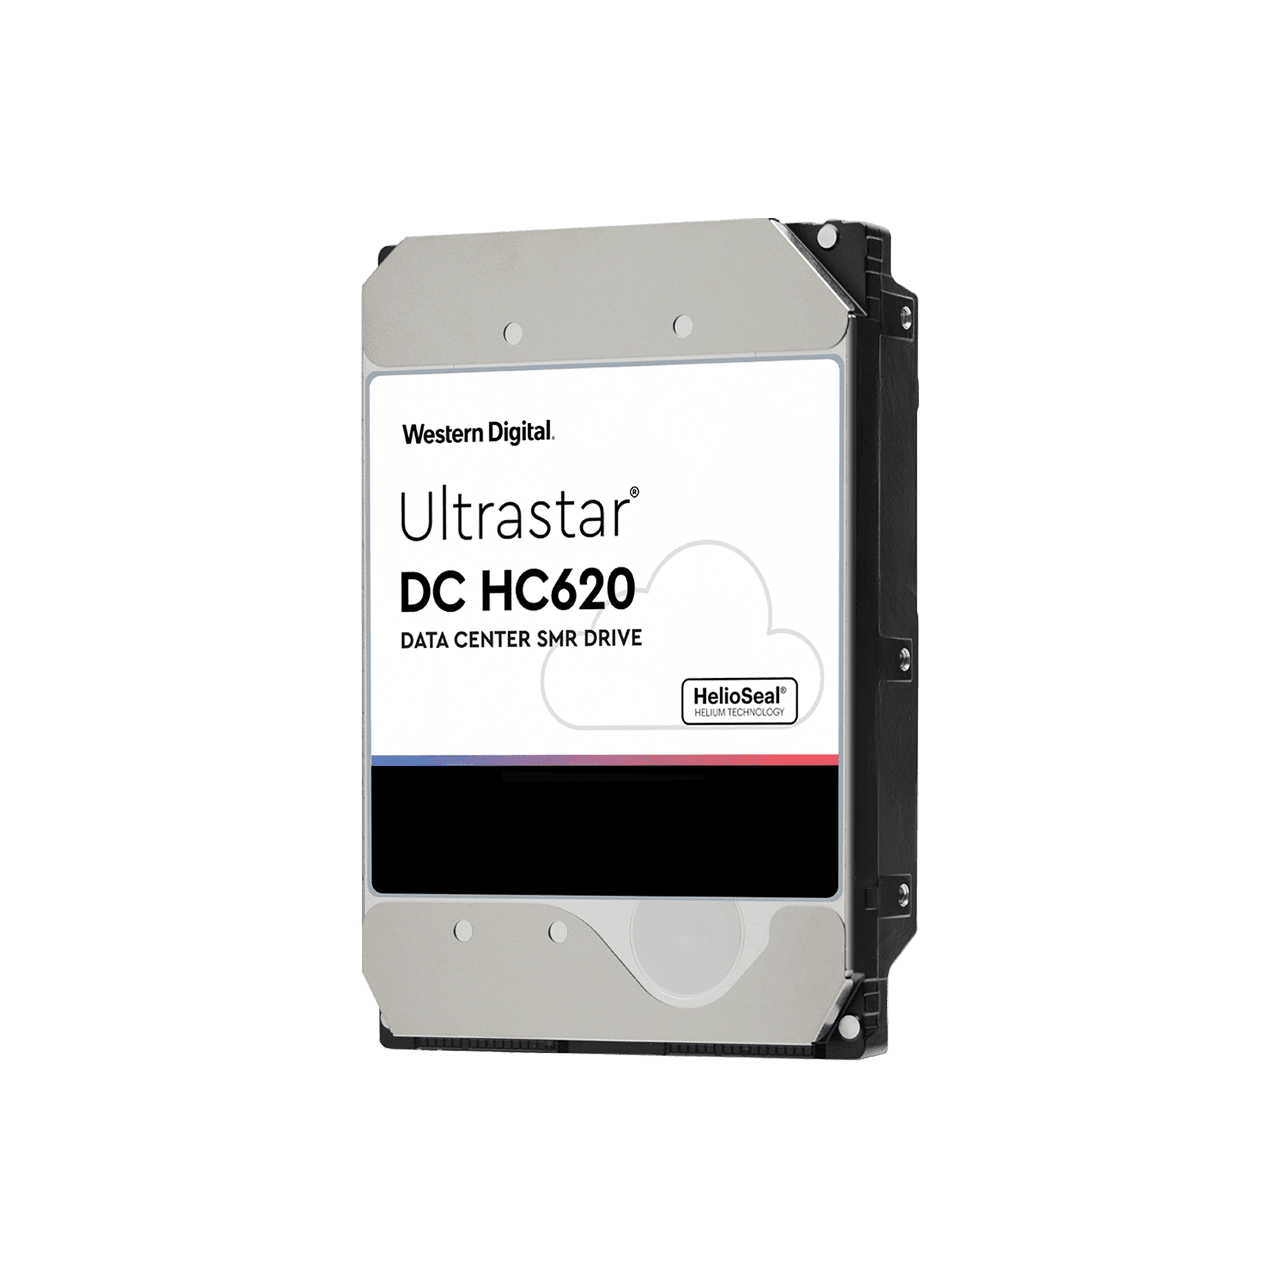 ultrastar-dc-hc620-14tb-left-western-digital